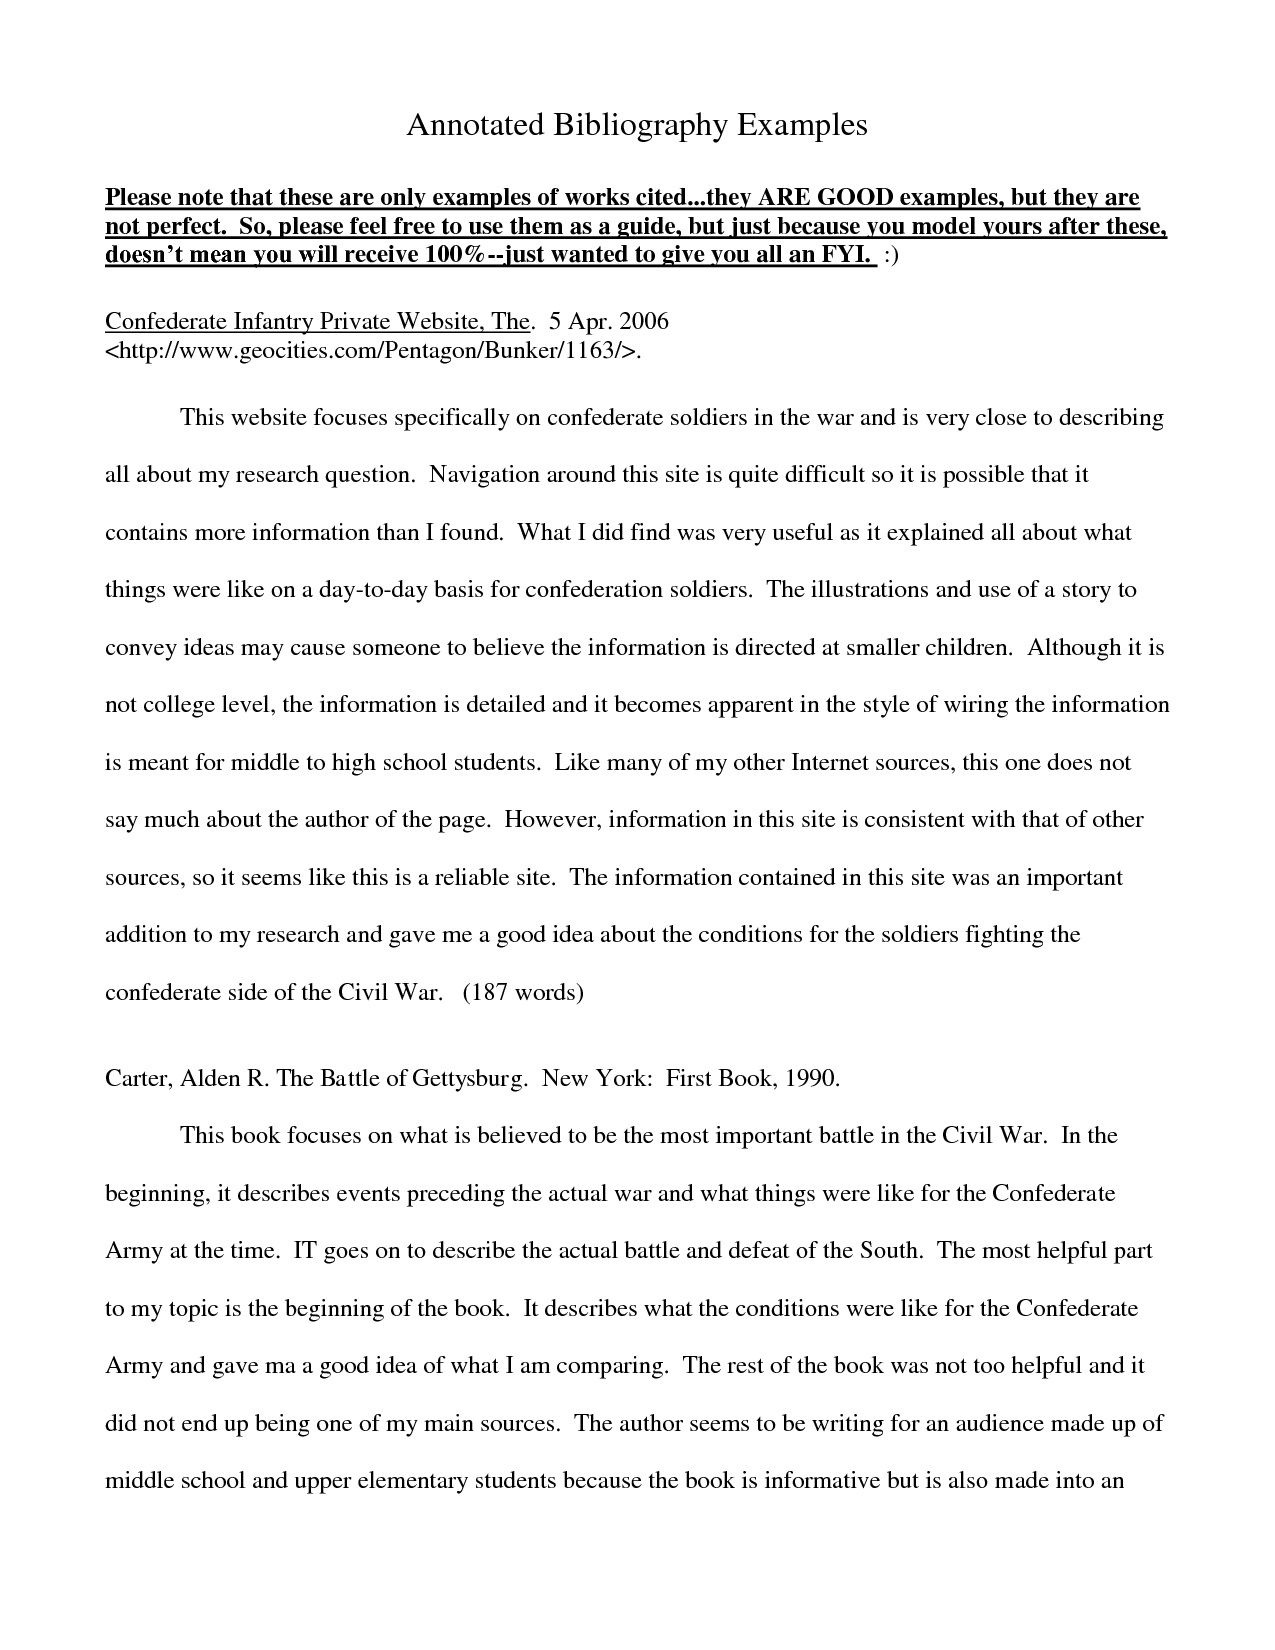 Annotated Bibliographie Example Essay Bibliography Life Story